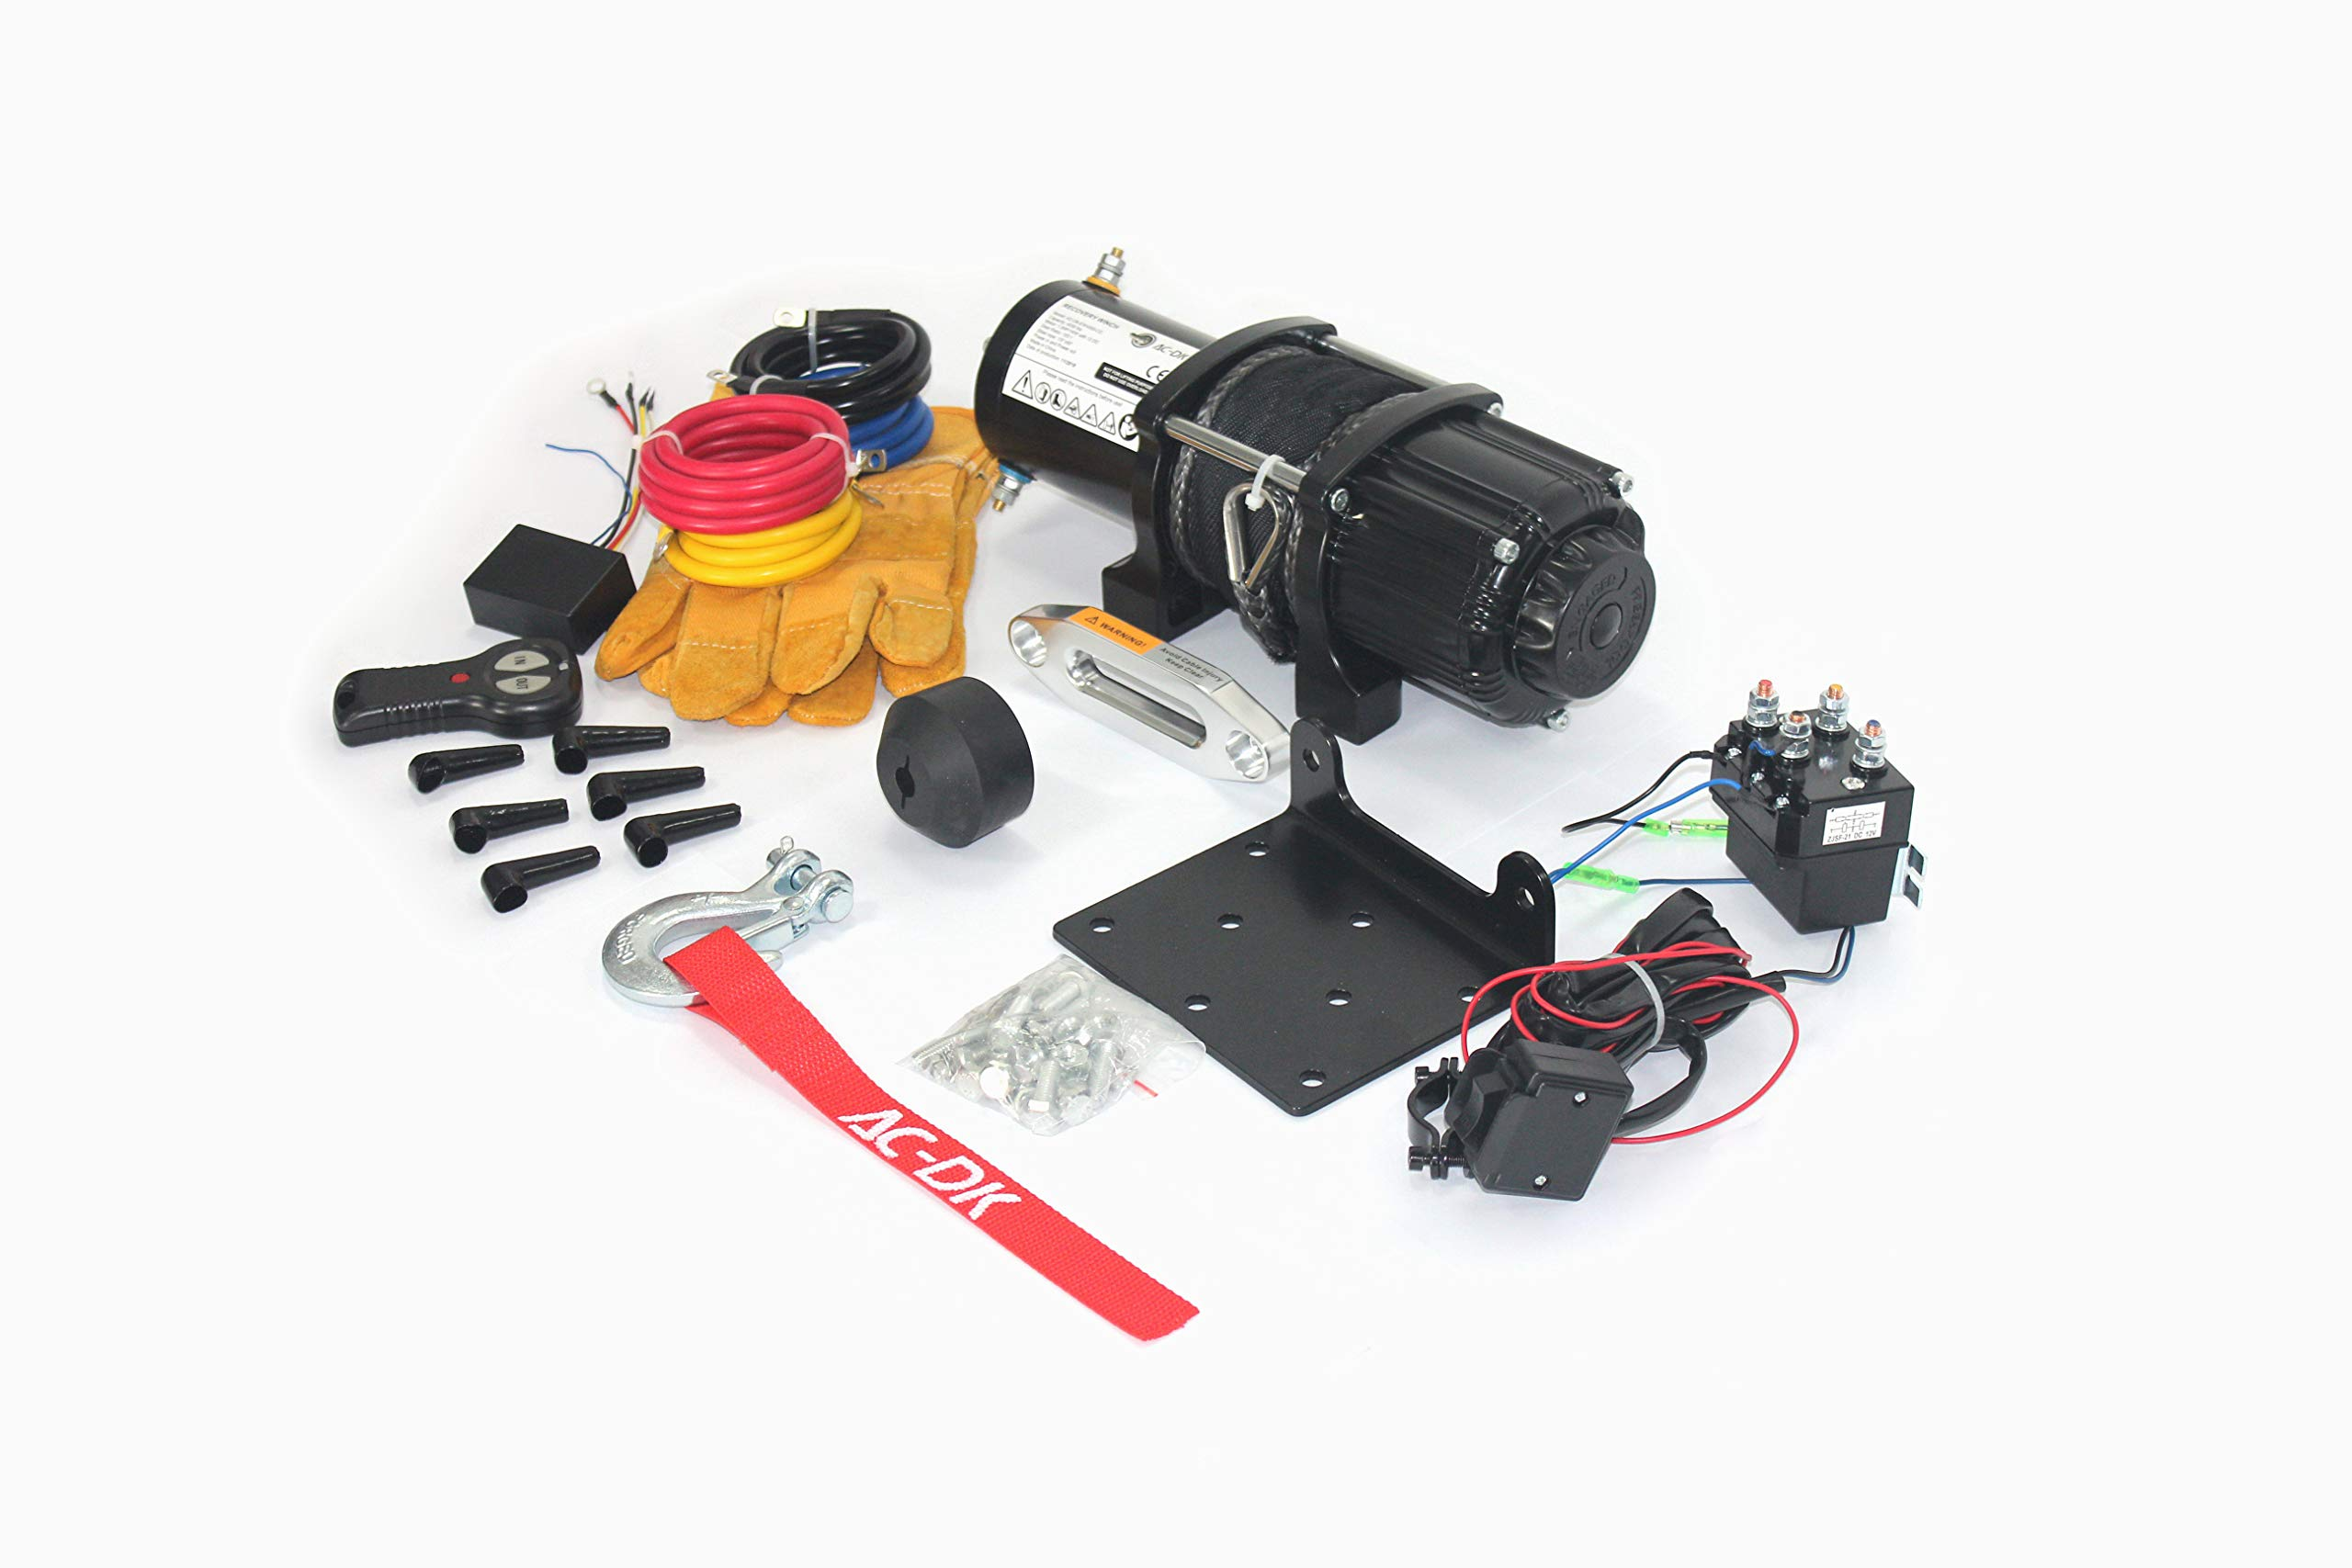 AC-DK 12V 4500lb ATV Winch UTV Winch Electric Winch Set for 4x4 Off Road (4500lb Winch with Synthetic Rope) by AC-DK (Image #2)